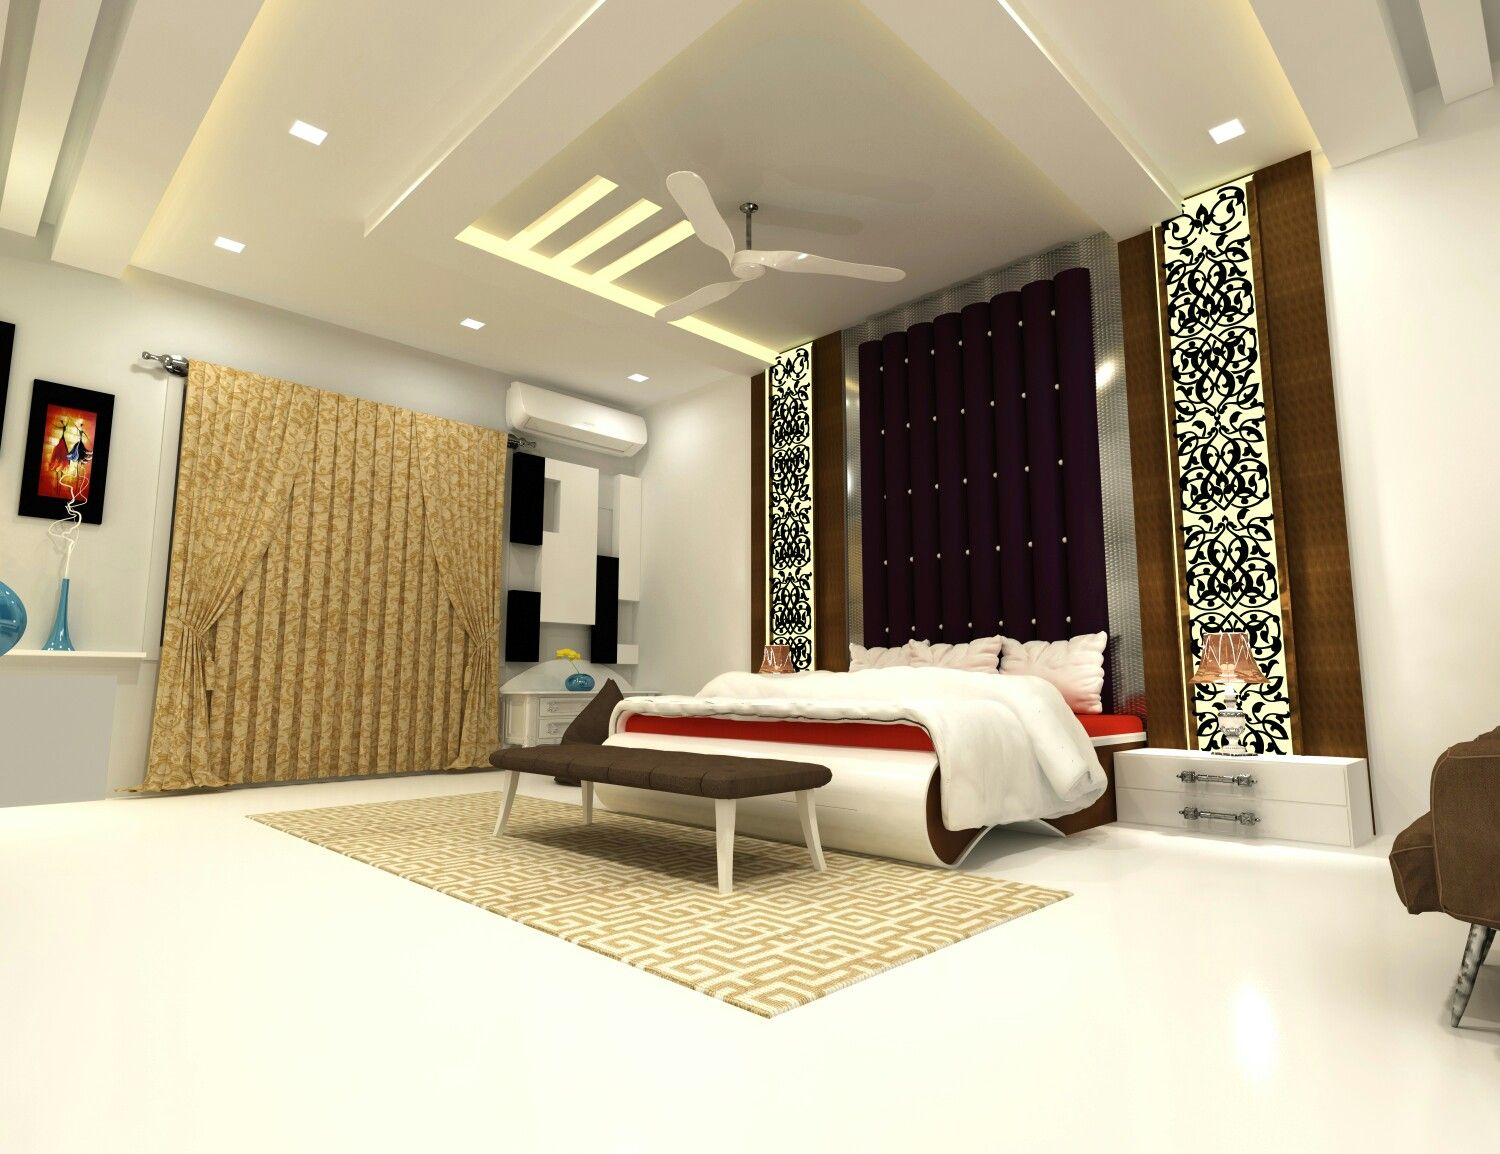 Bedroom  Modern bedroom design, Bedroom design, False ceiling design